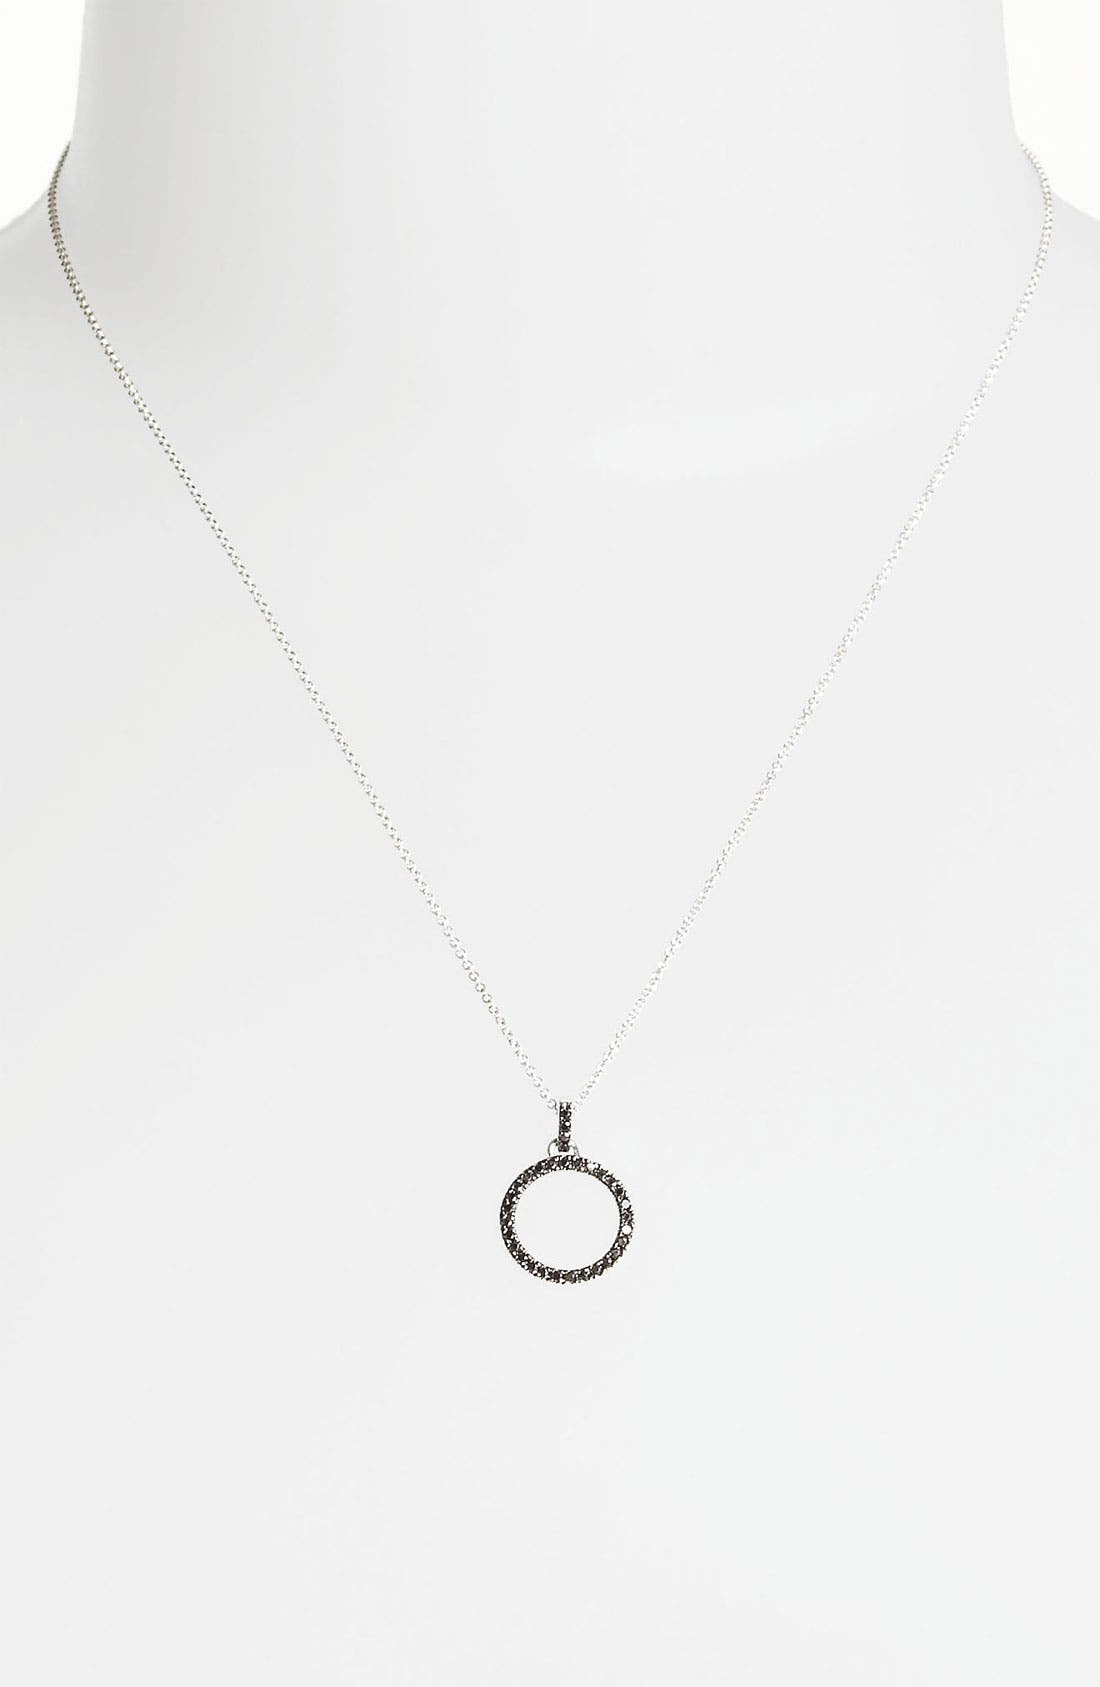 Main Image - Bony Levy 'Eclipse' Open Circle Diamond Pendant Necklace (Nordstrom Exclusive)